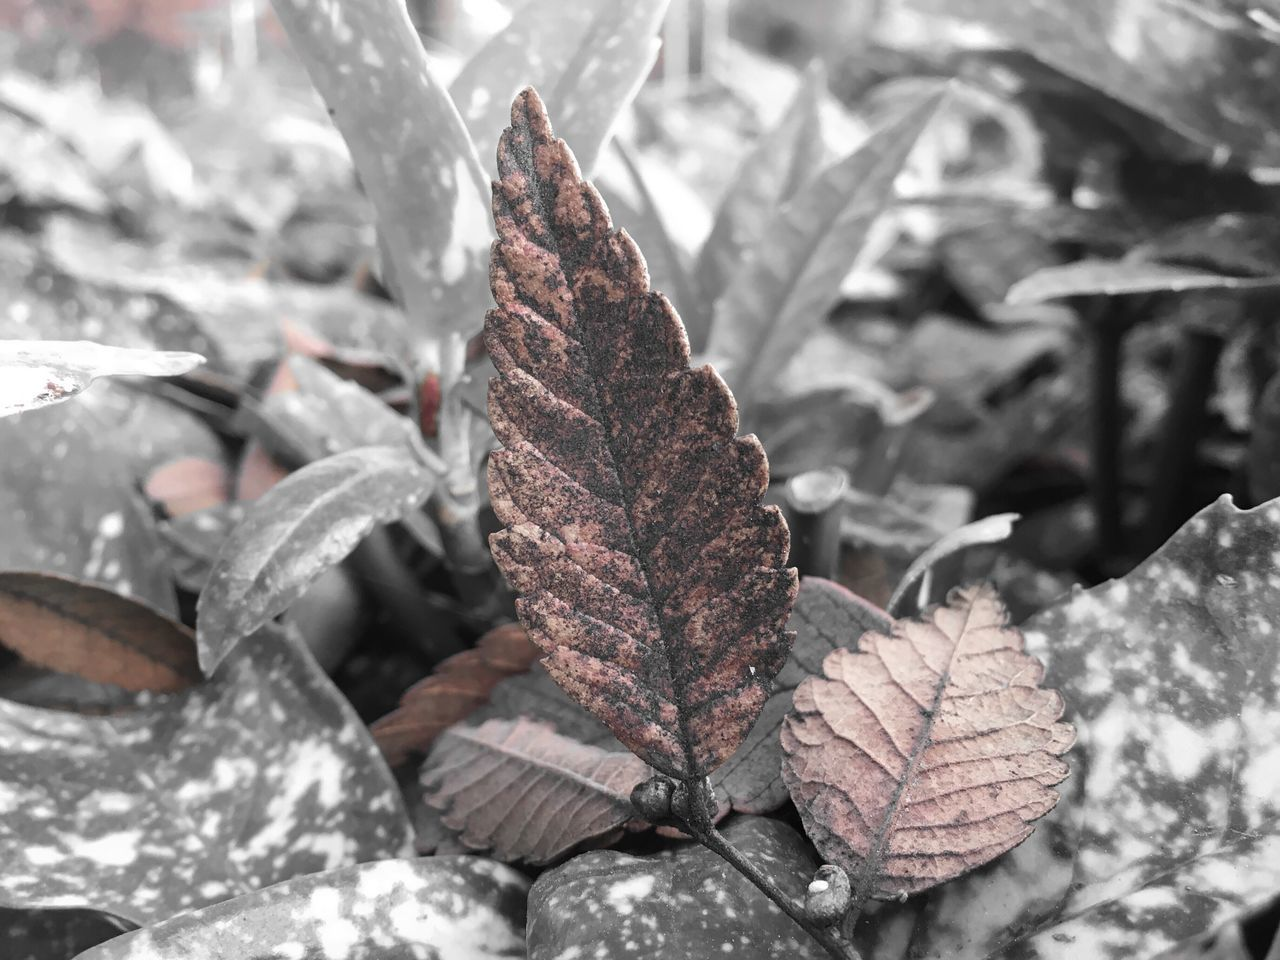 Outdoors Tree Leaf Nature Close-up Winter No People Day Snow Cold Temperature Frozen Growth Beauty In Nature Dried Plant Fragility